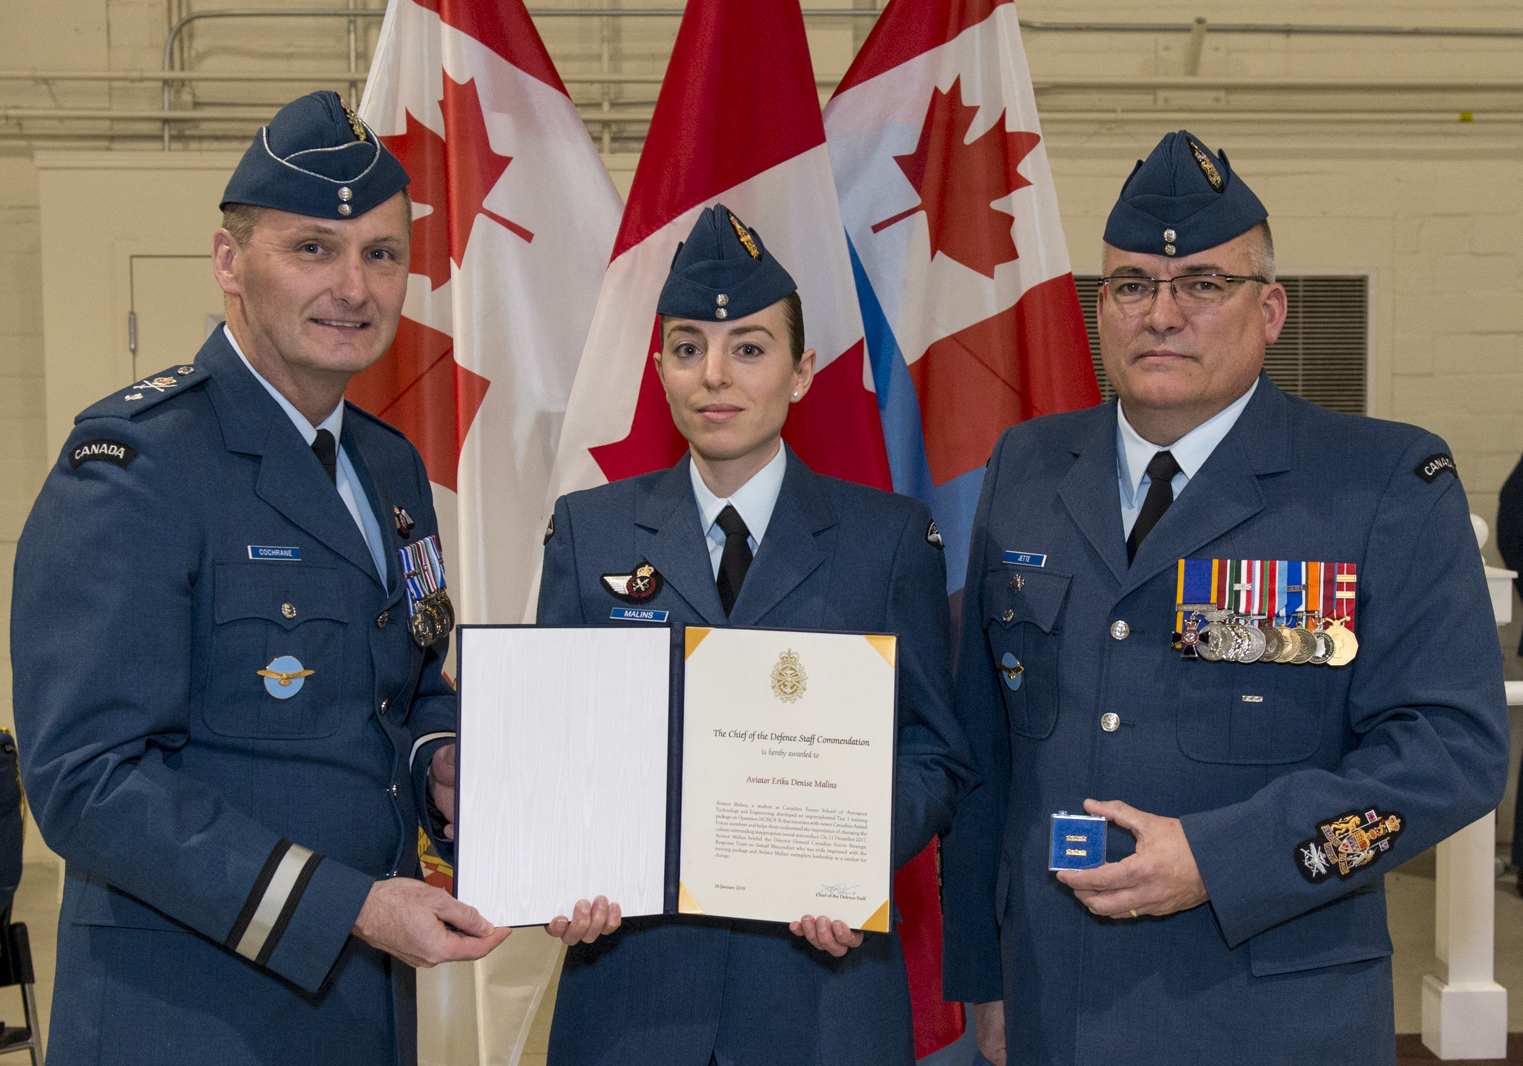 Three people wearing air force uniforms stand beside each other. Two are jointly holding a certificate in a folder.